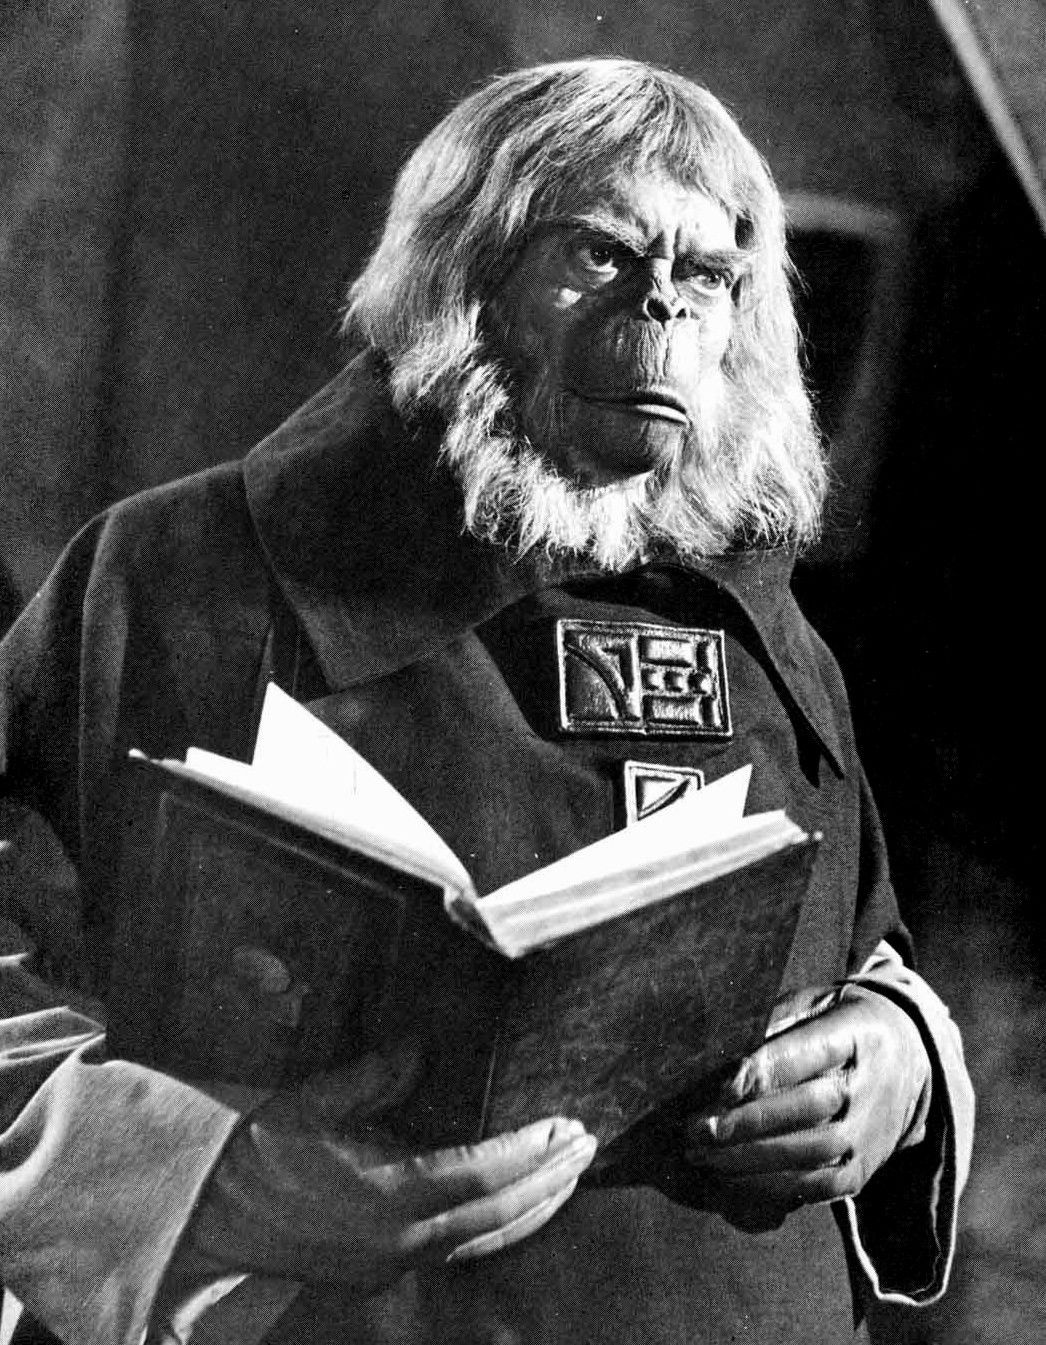 Minister in Beneath the Planet of The Apes